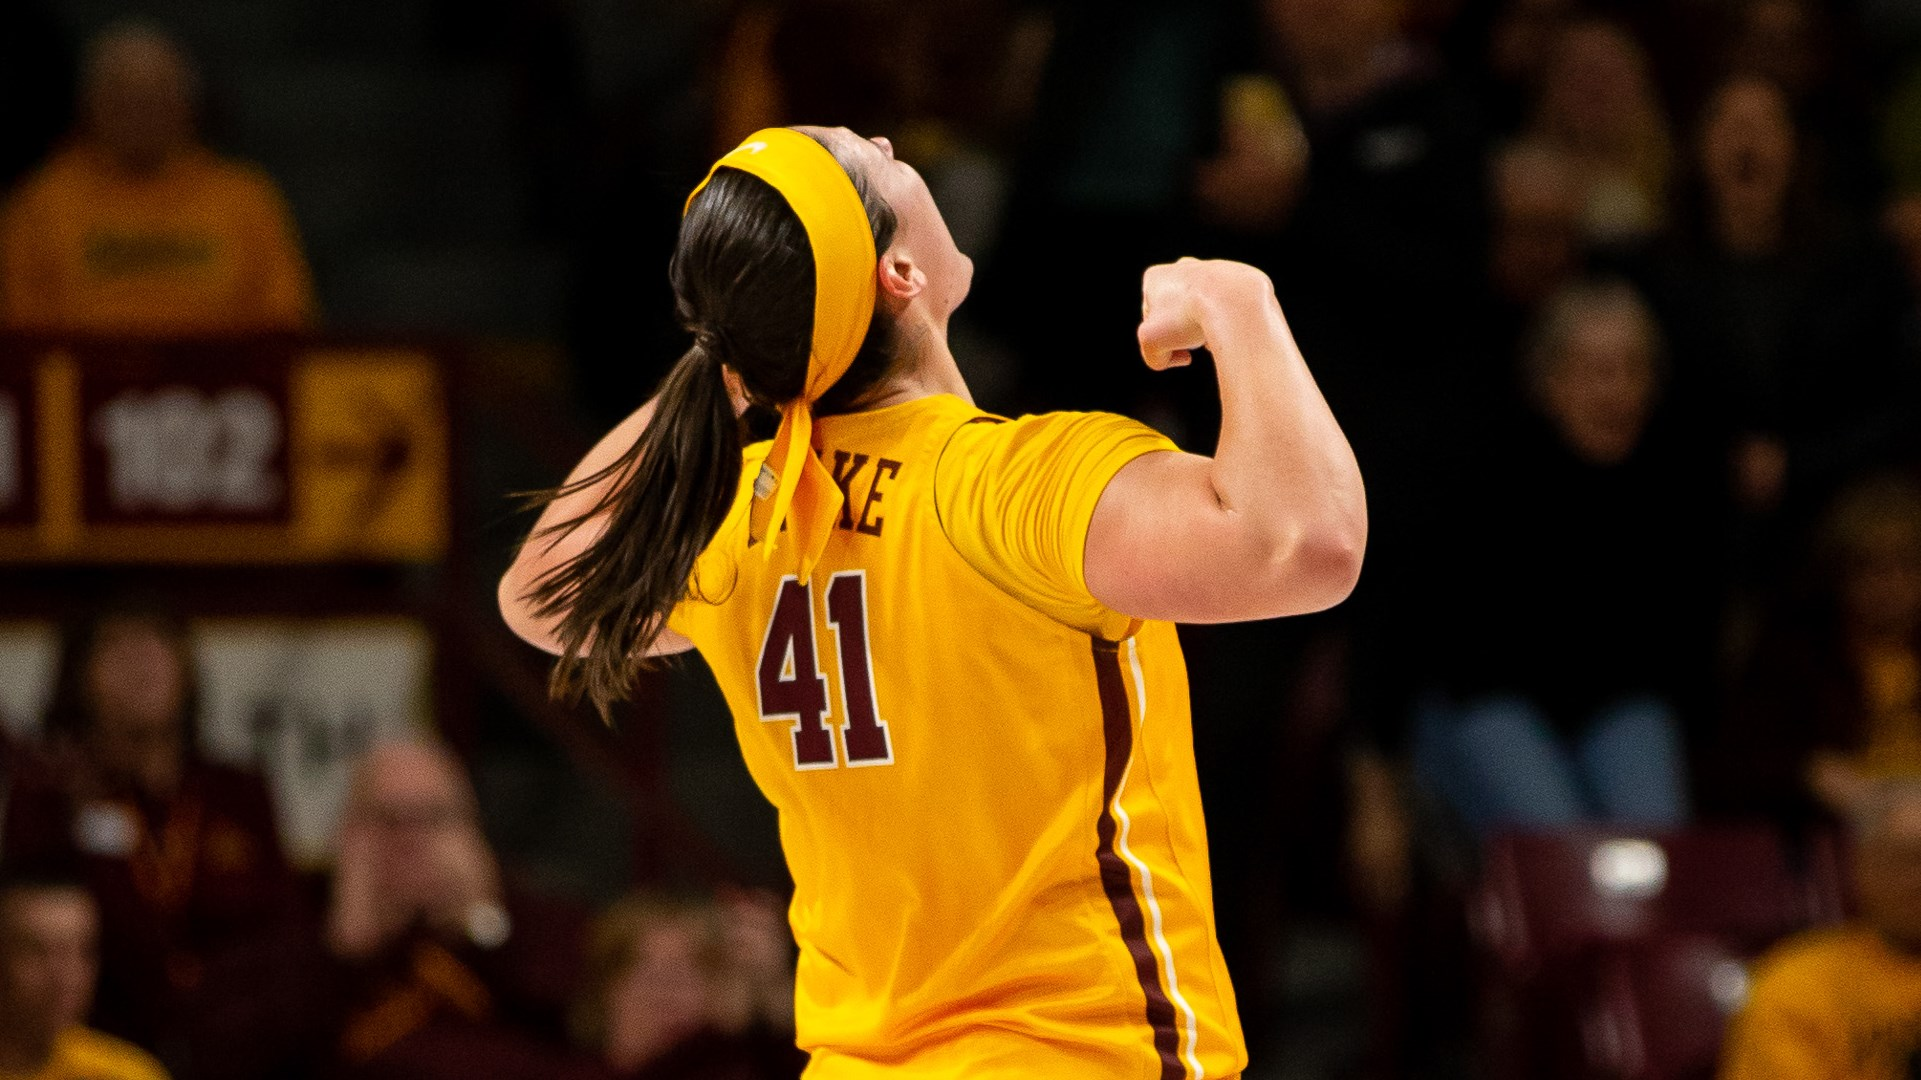 d7e4a01ec Second Round of WNIT Sends Gophers to Cincinnati Sunday - University ...